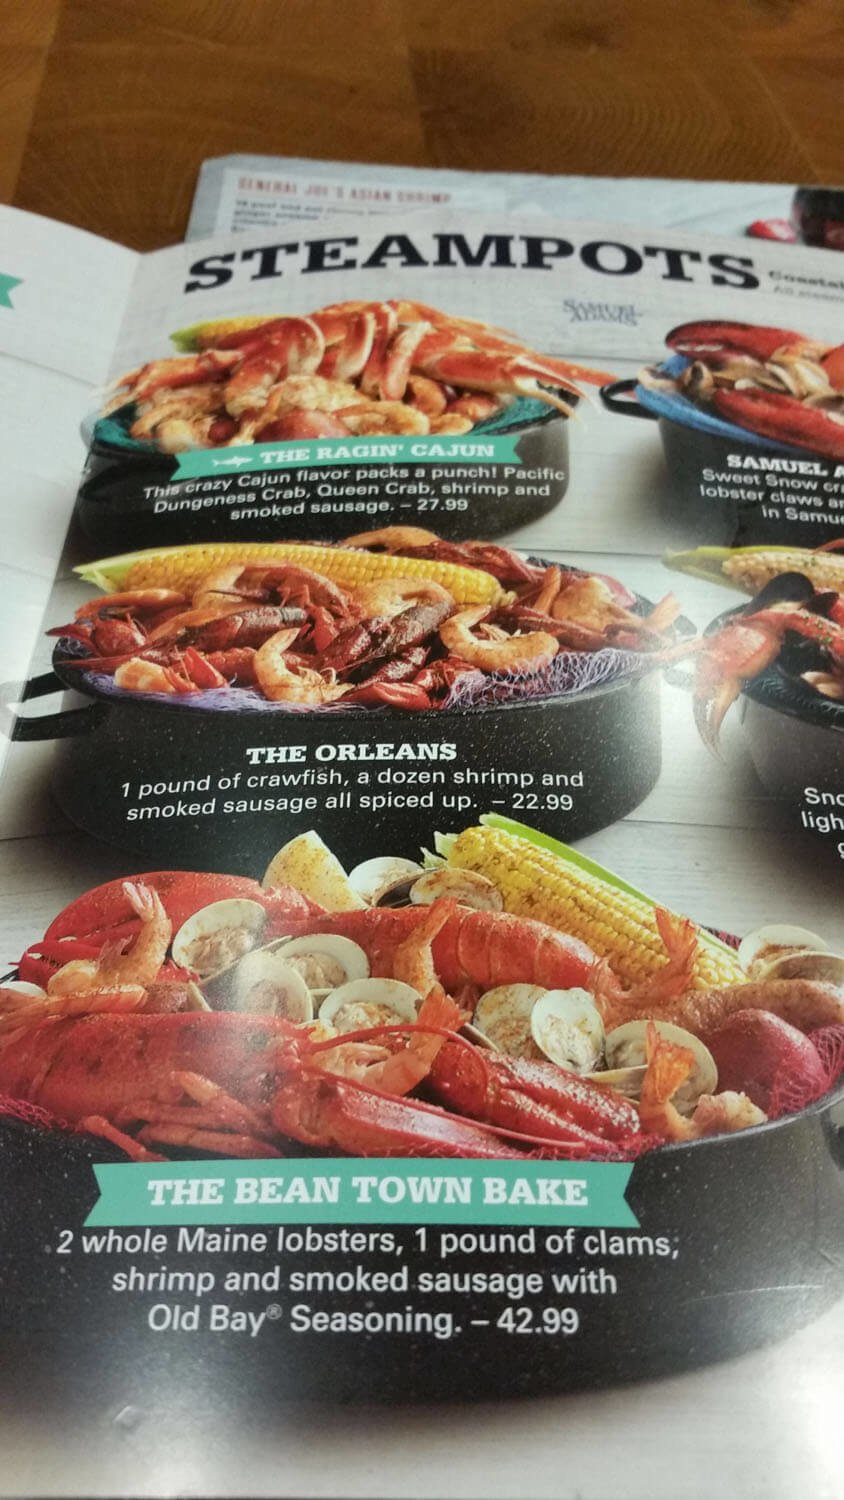 Joe's Crab Shack Menu – 17